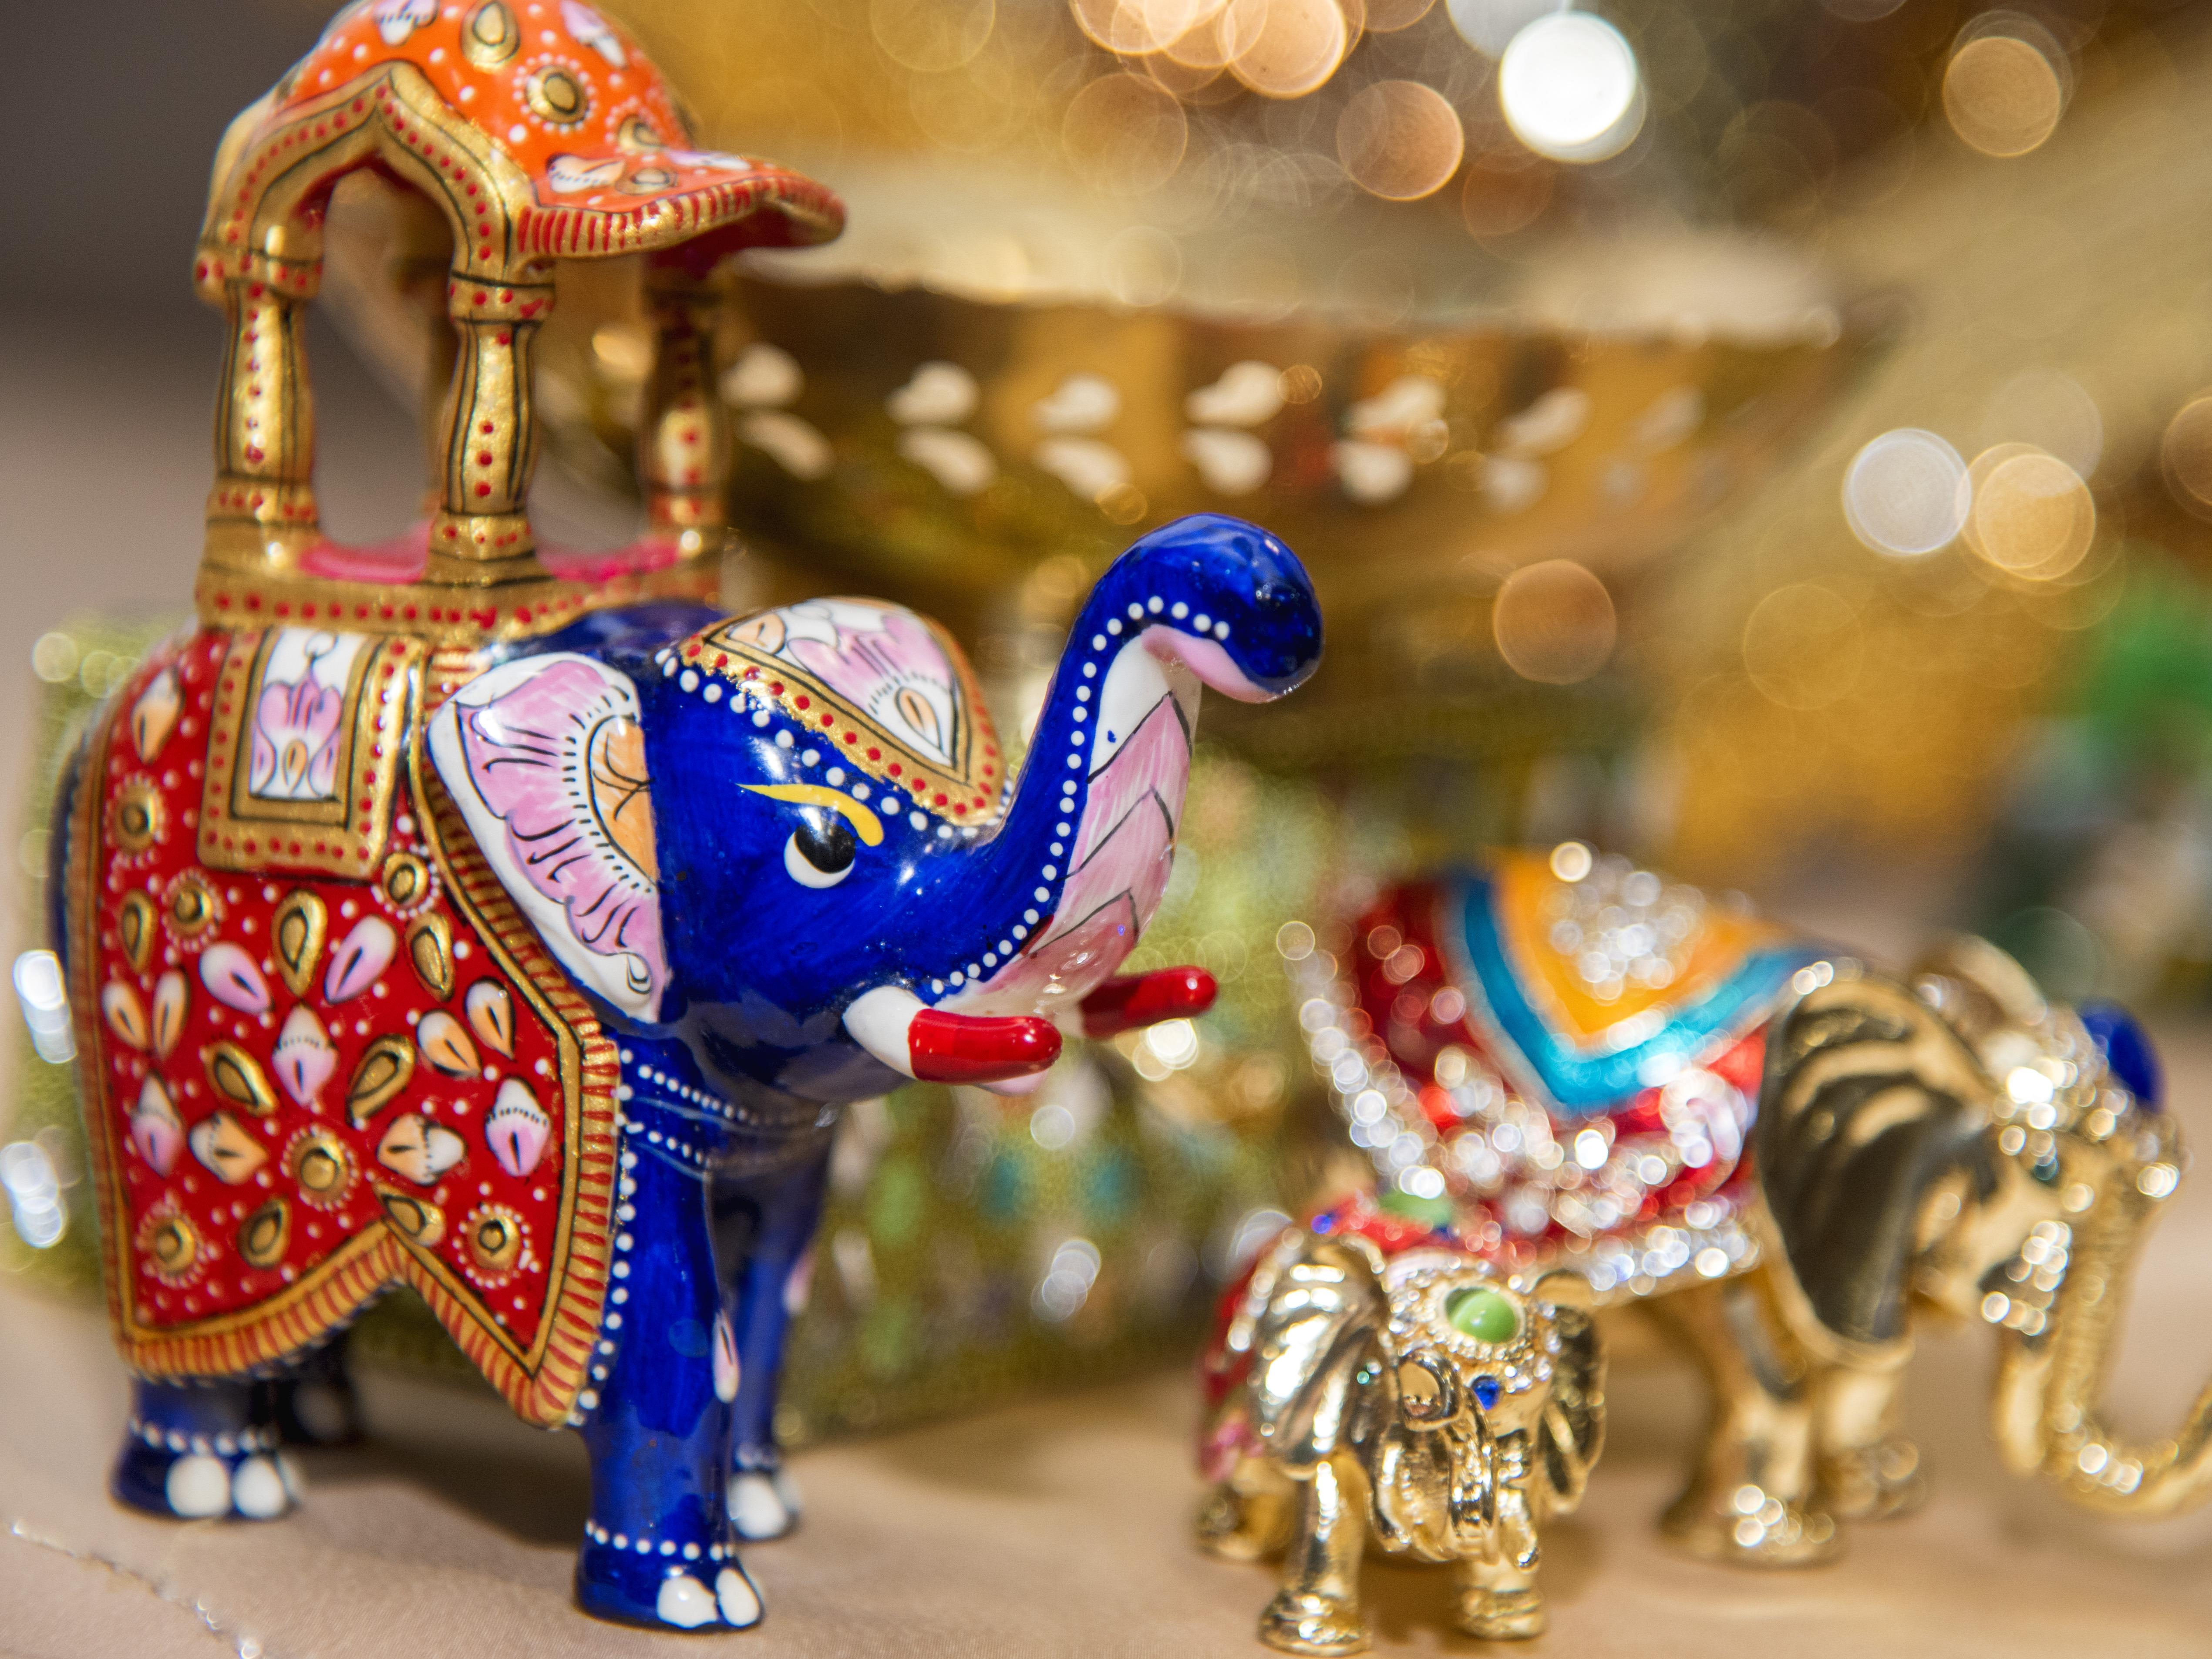 Photograph of brightly colored of Indian elephants